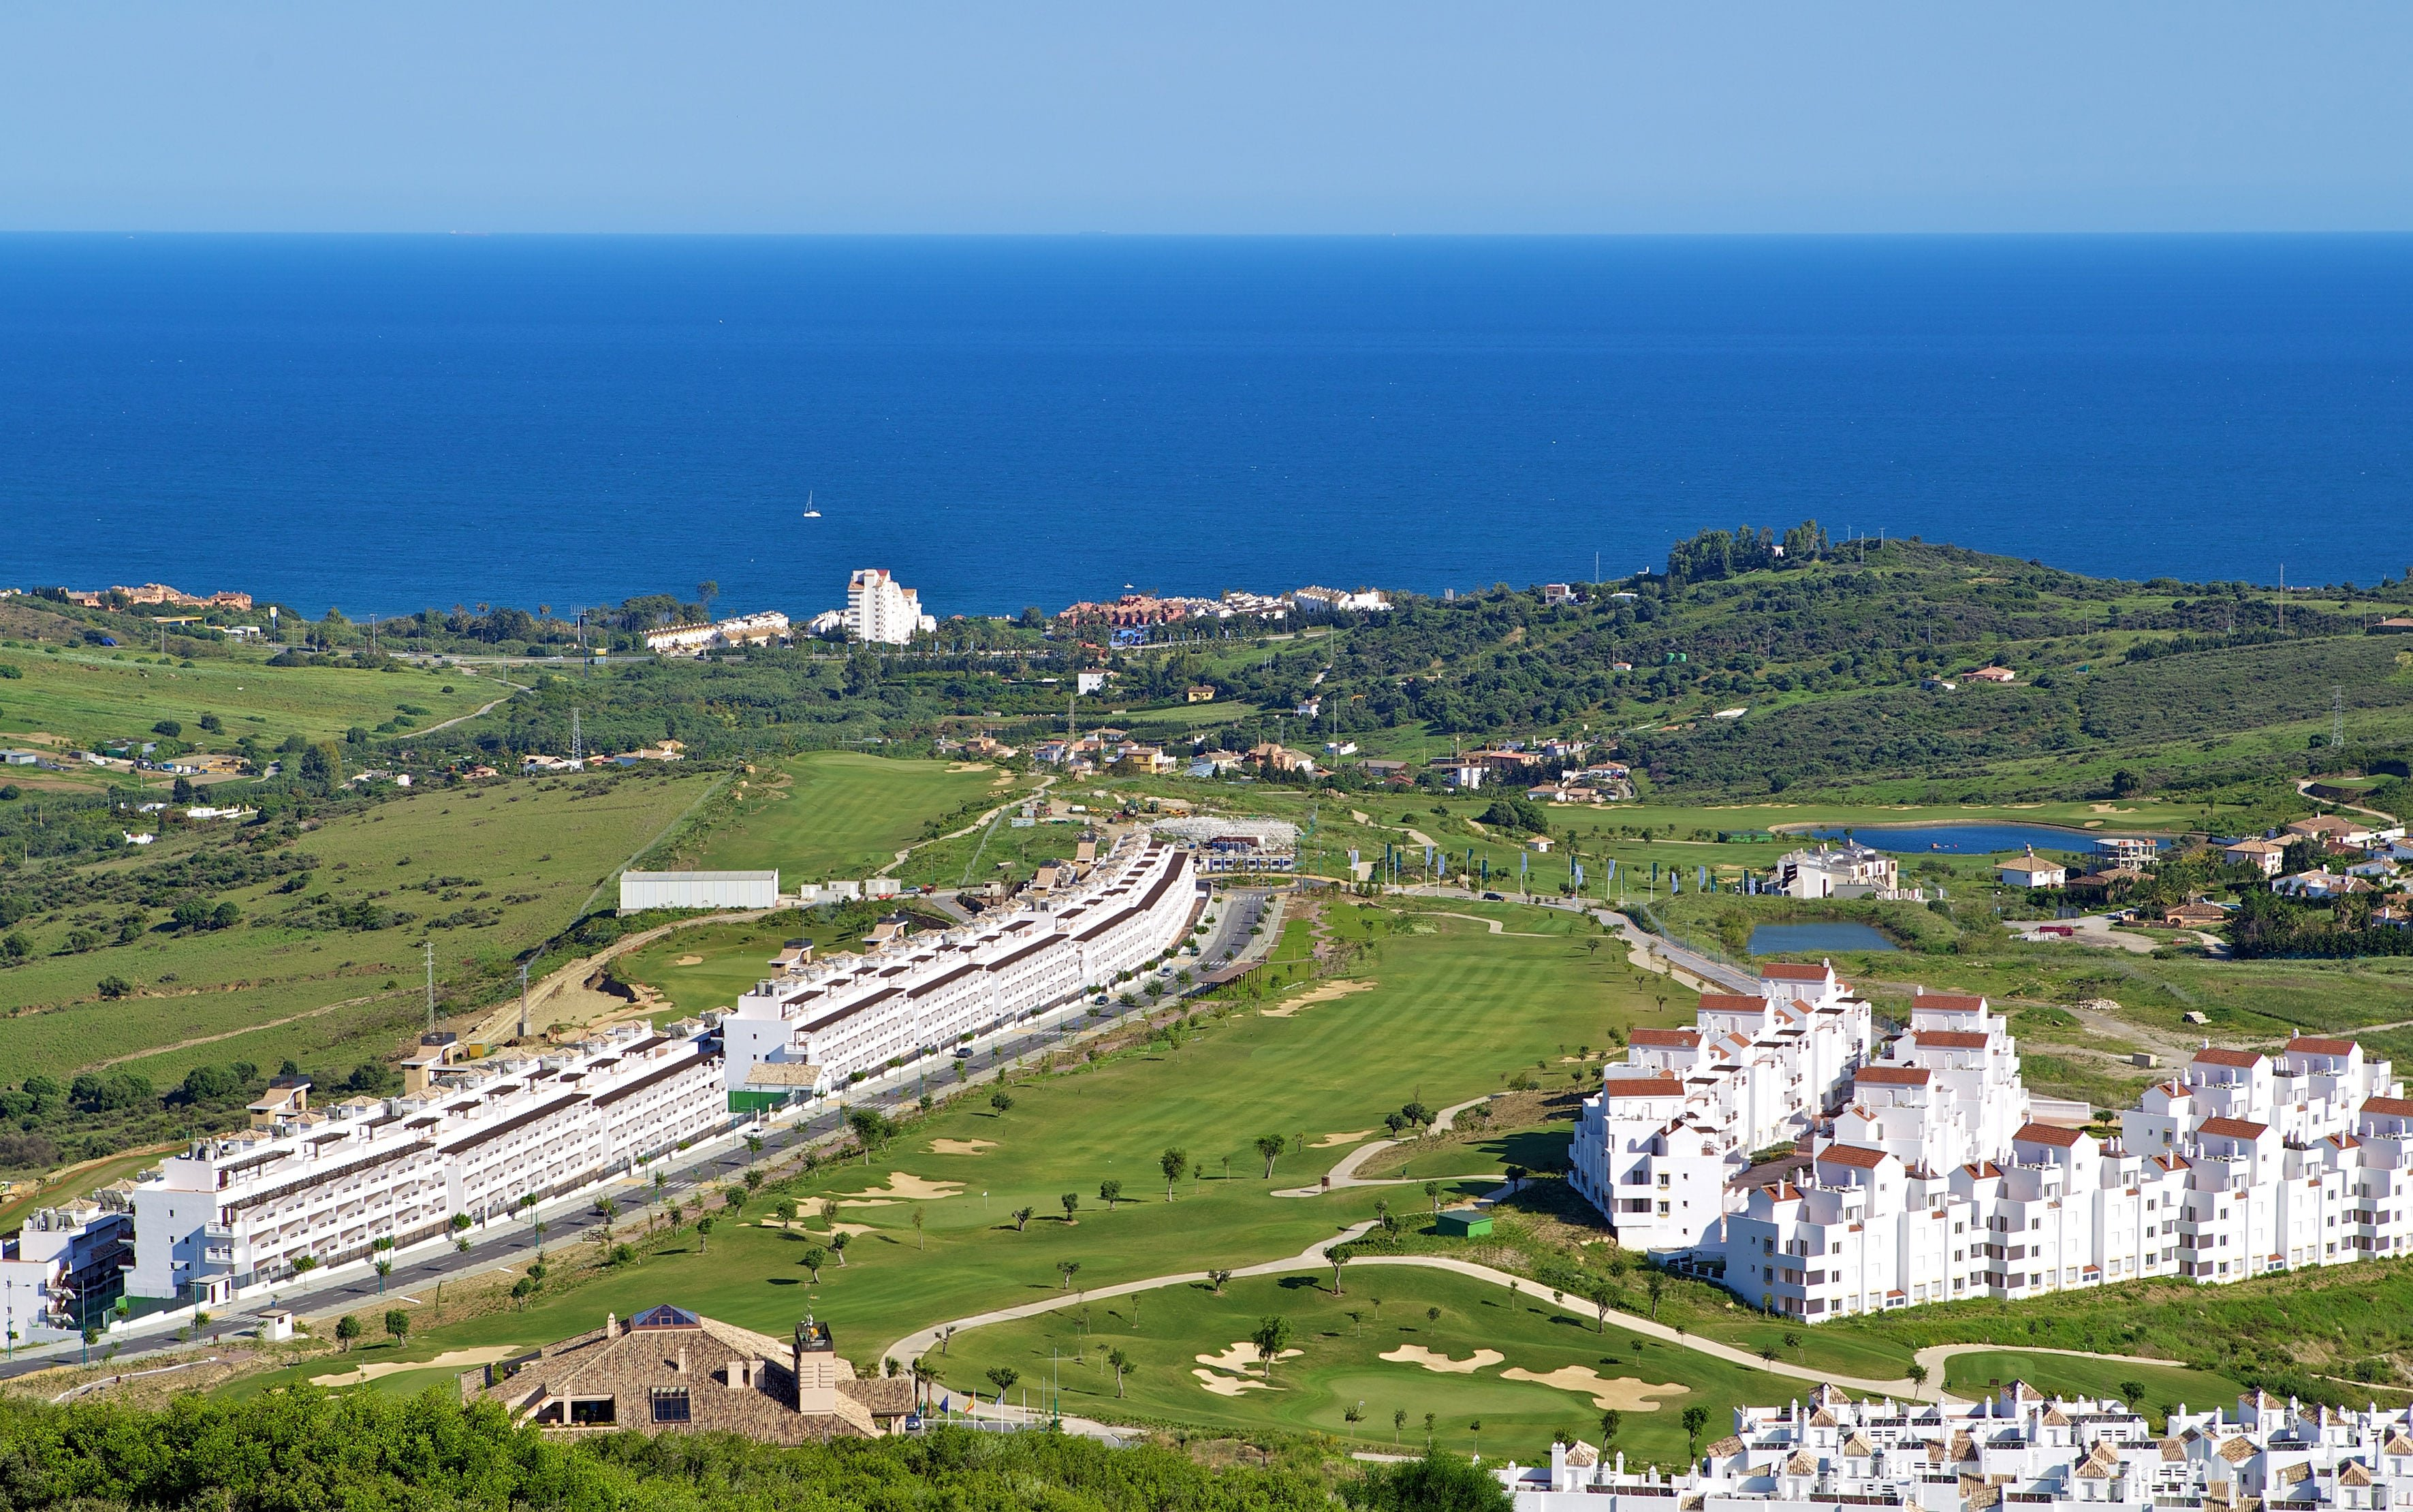 ona-valle-romano-golf-the-hotel-aerial-view